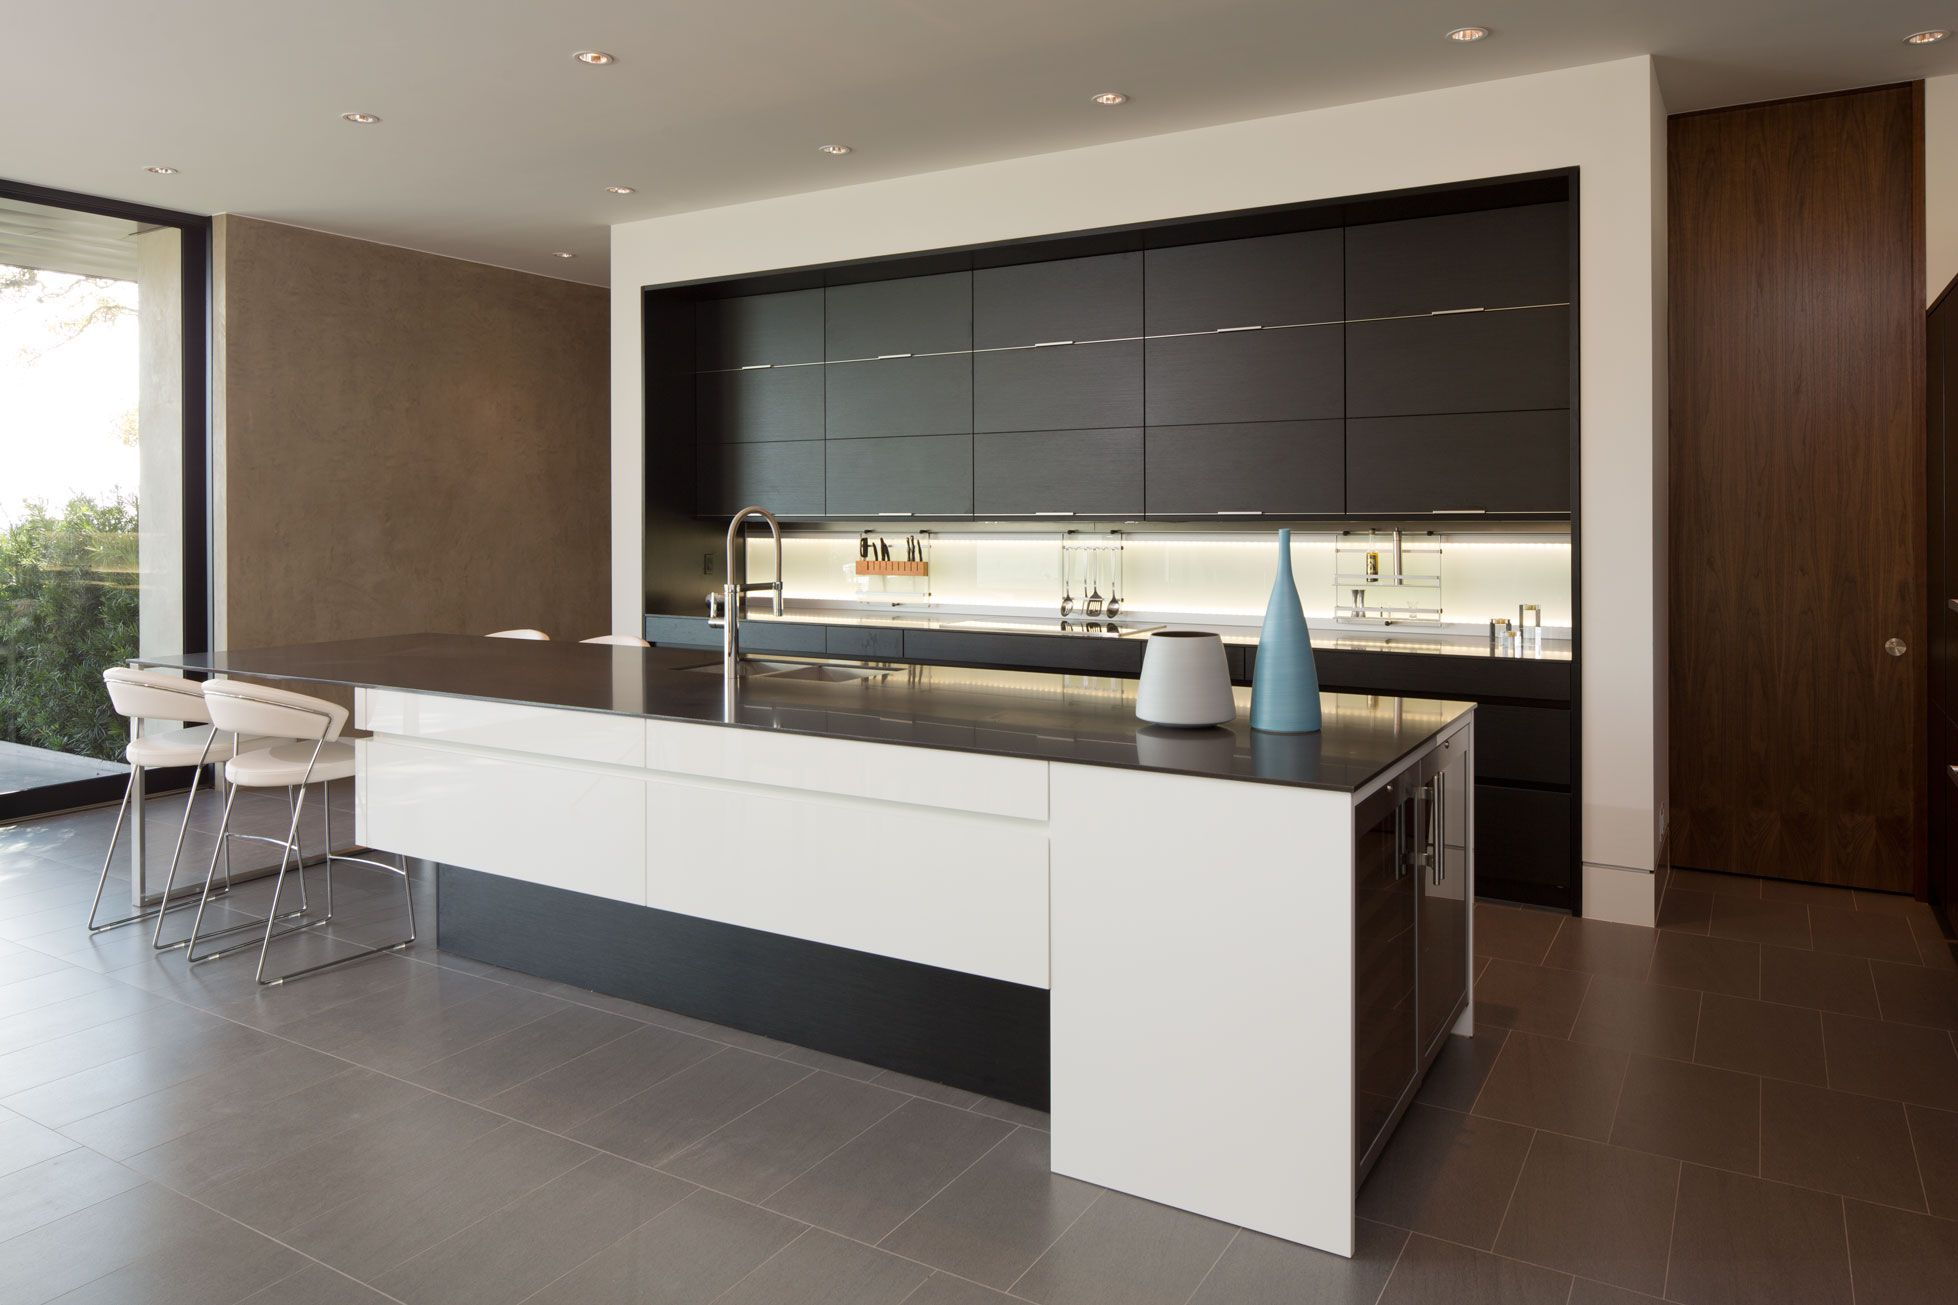 Microwaves Perth Skyline Project Austin Tx Kitchen Cabinets By Leicht